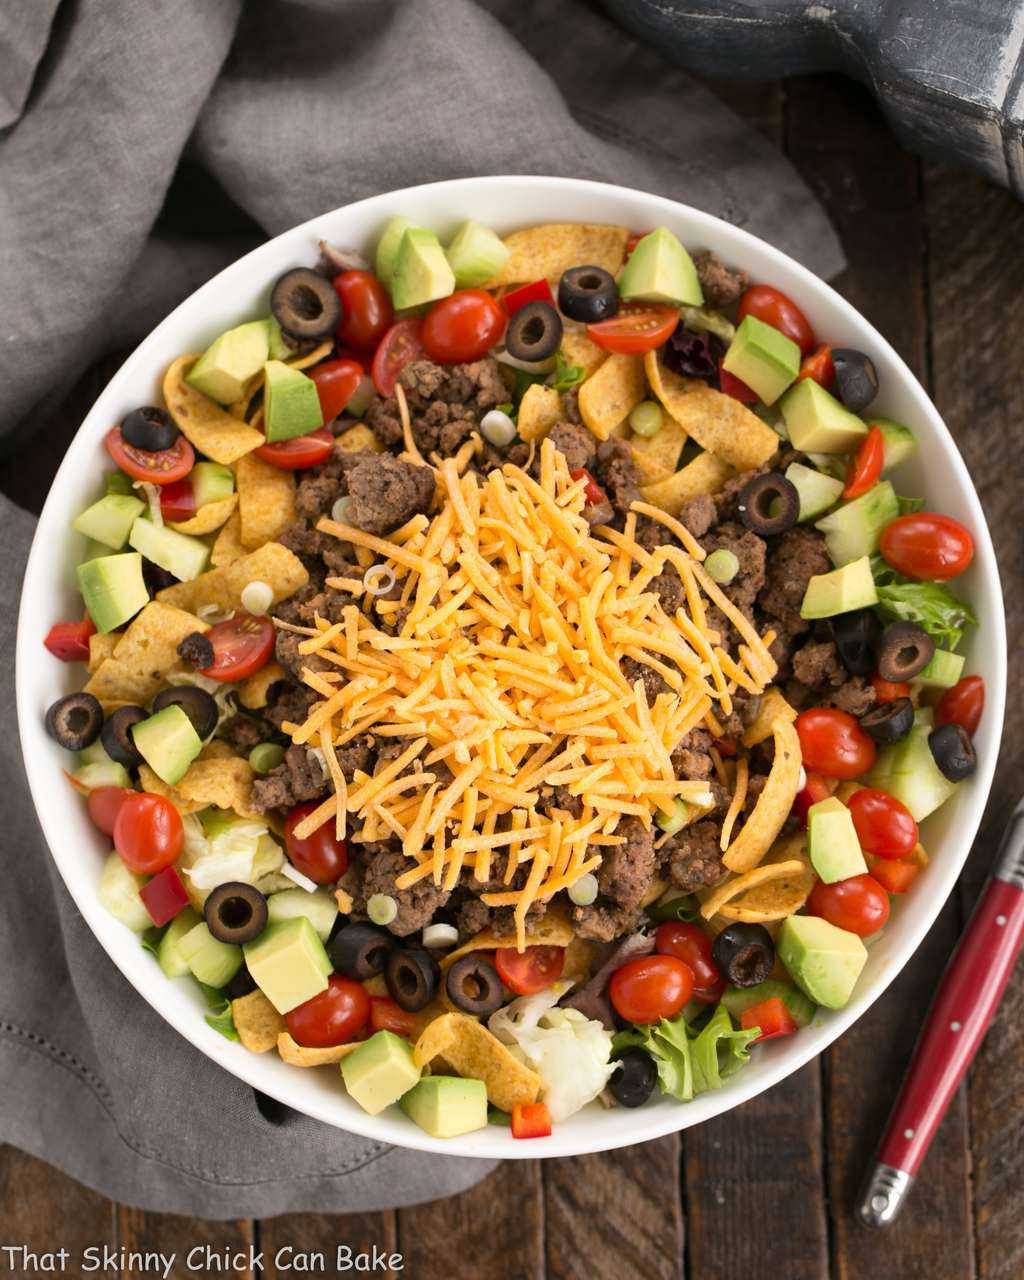 Beef Taco Salad with Salsa Dressing - a Tex-Mex salad with spicy ground beef, veggies, cheese and a creamy salsa dressing